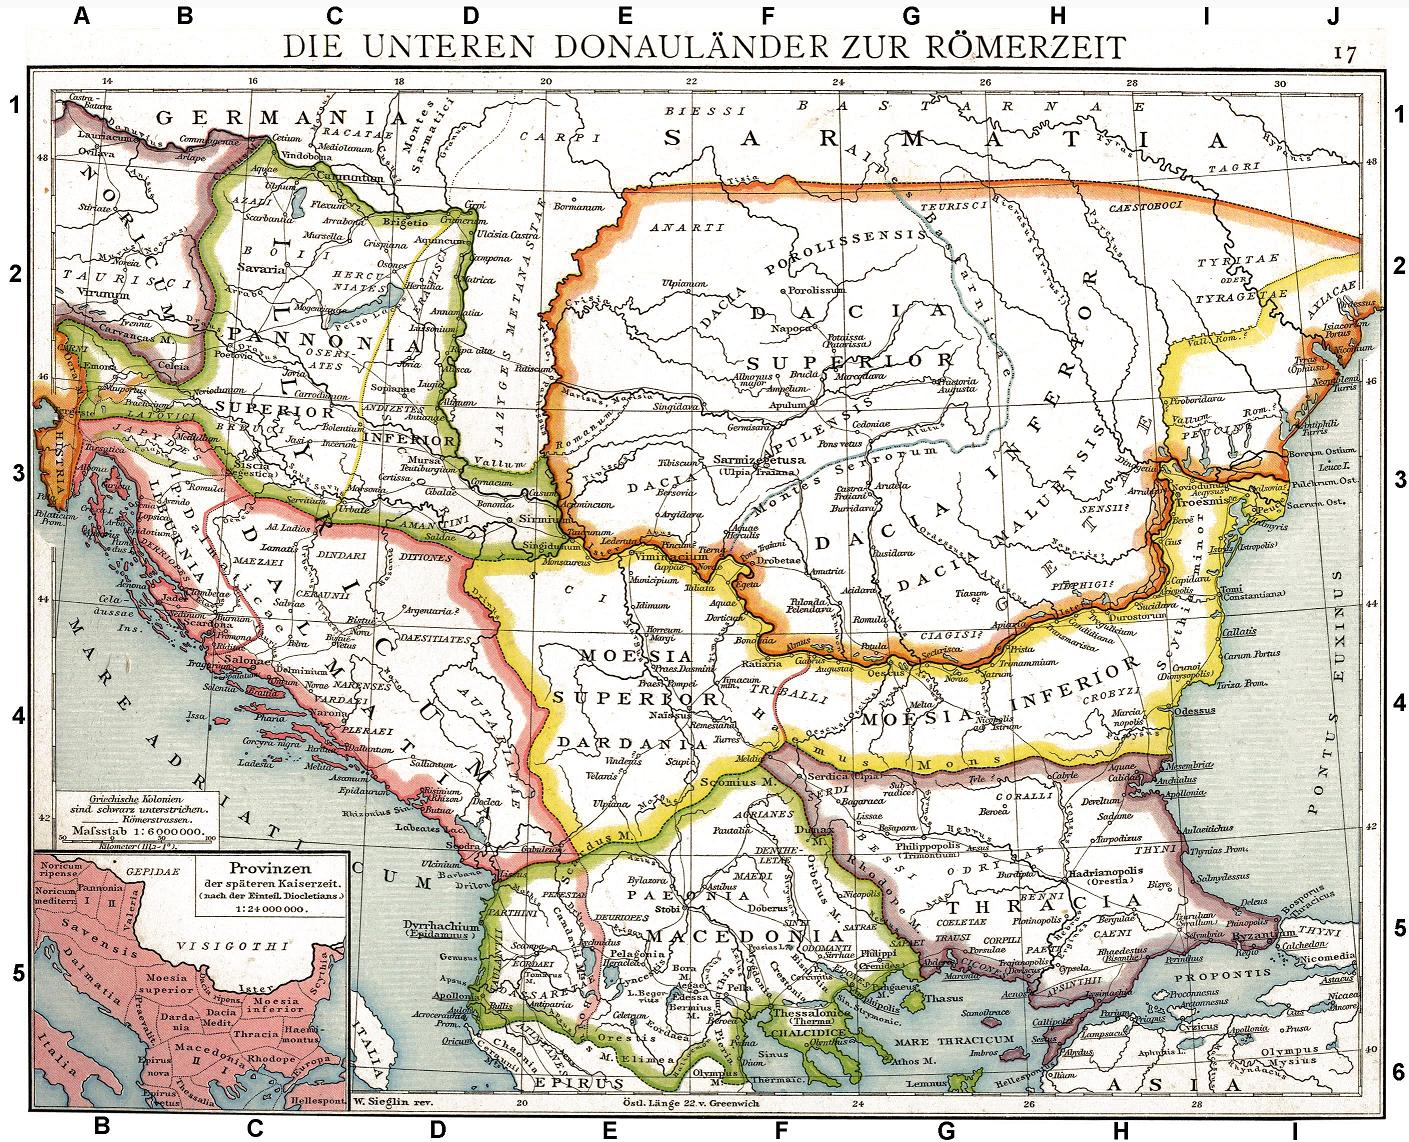 Roman provinces of Illyricum Macedonia Dacia Moesia Pannonia and Thracia